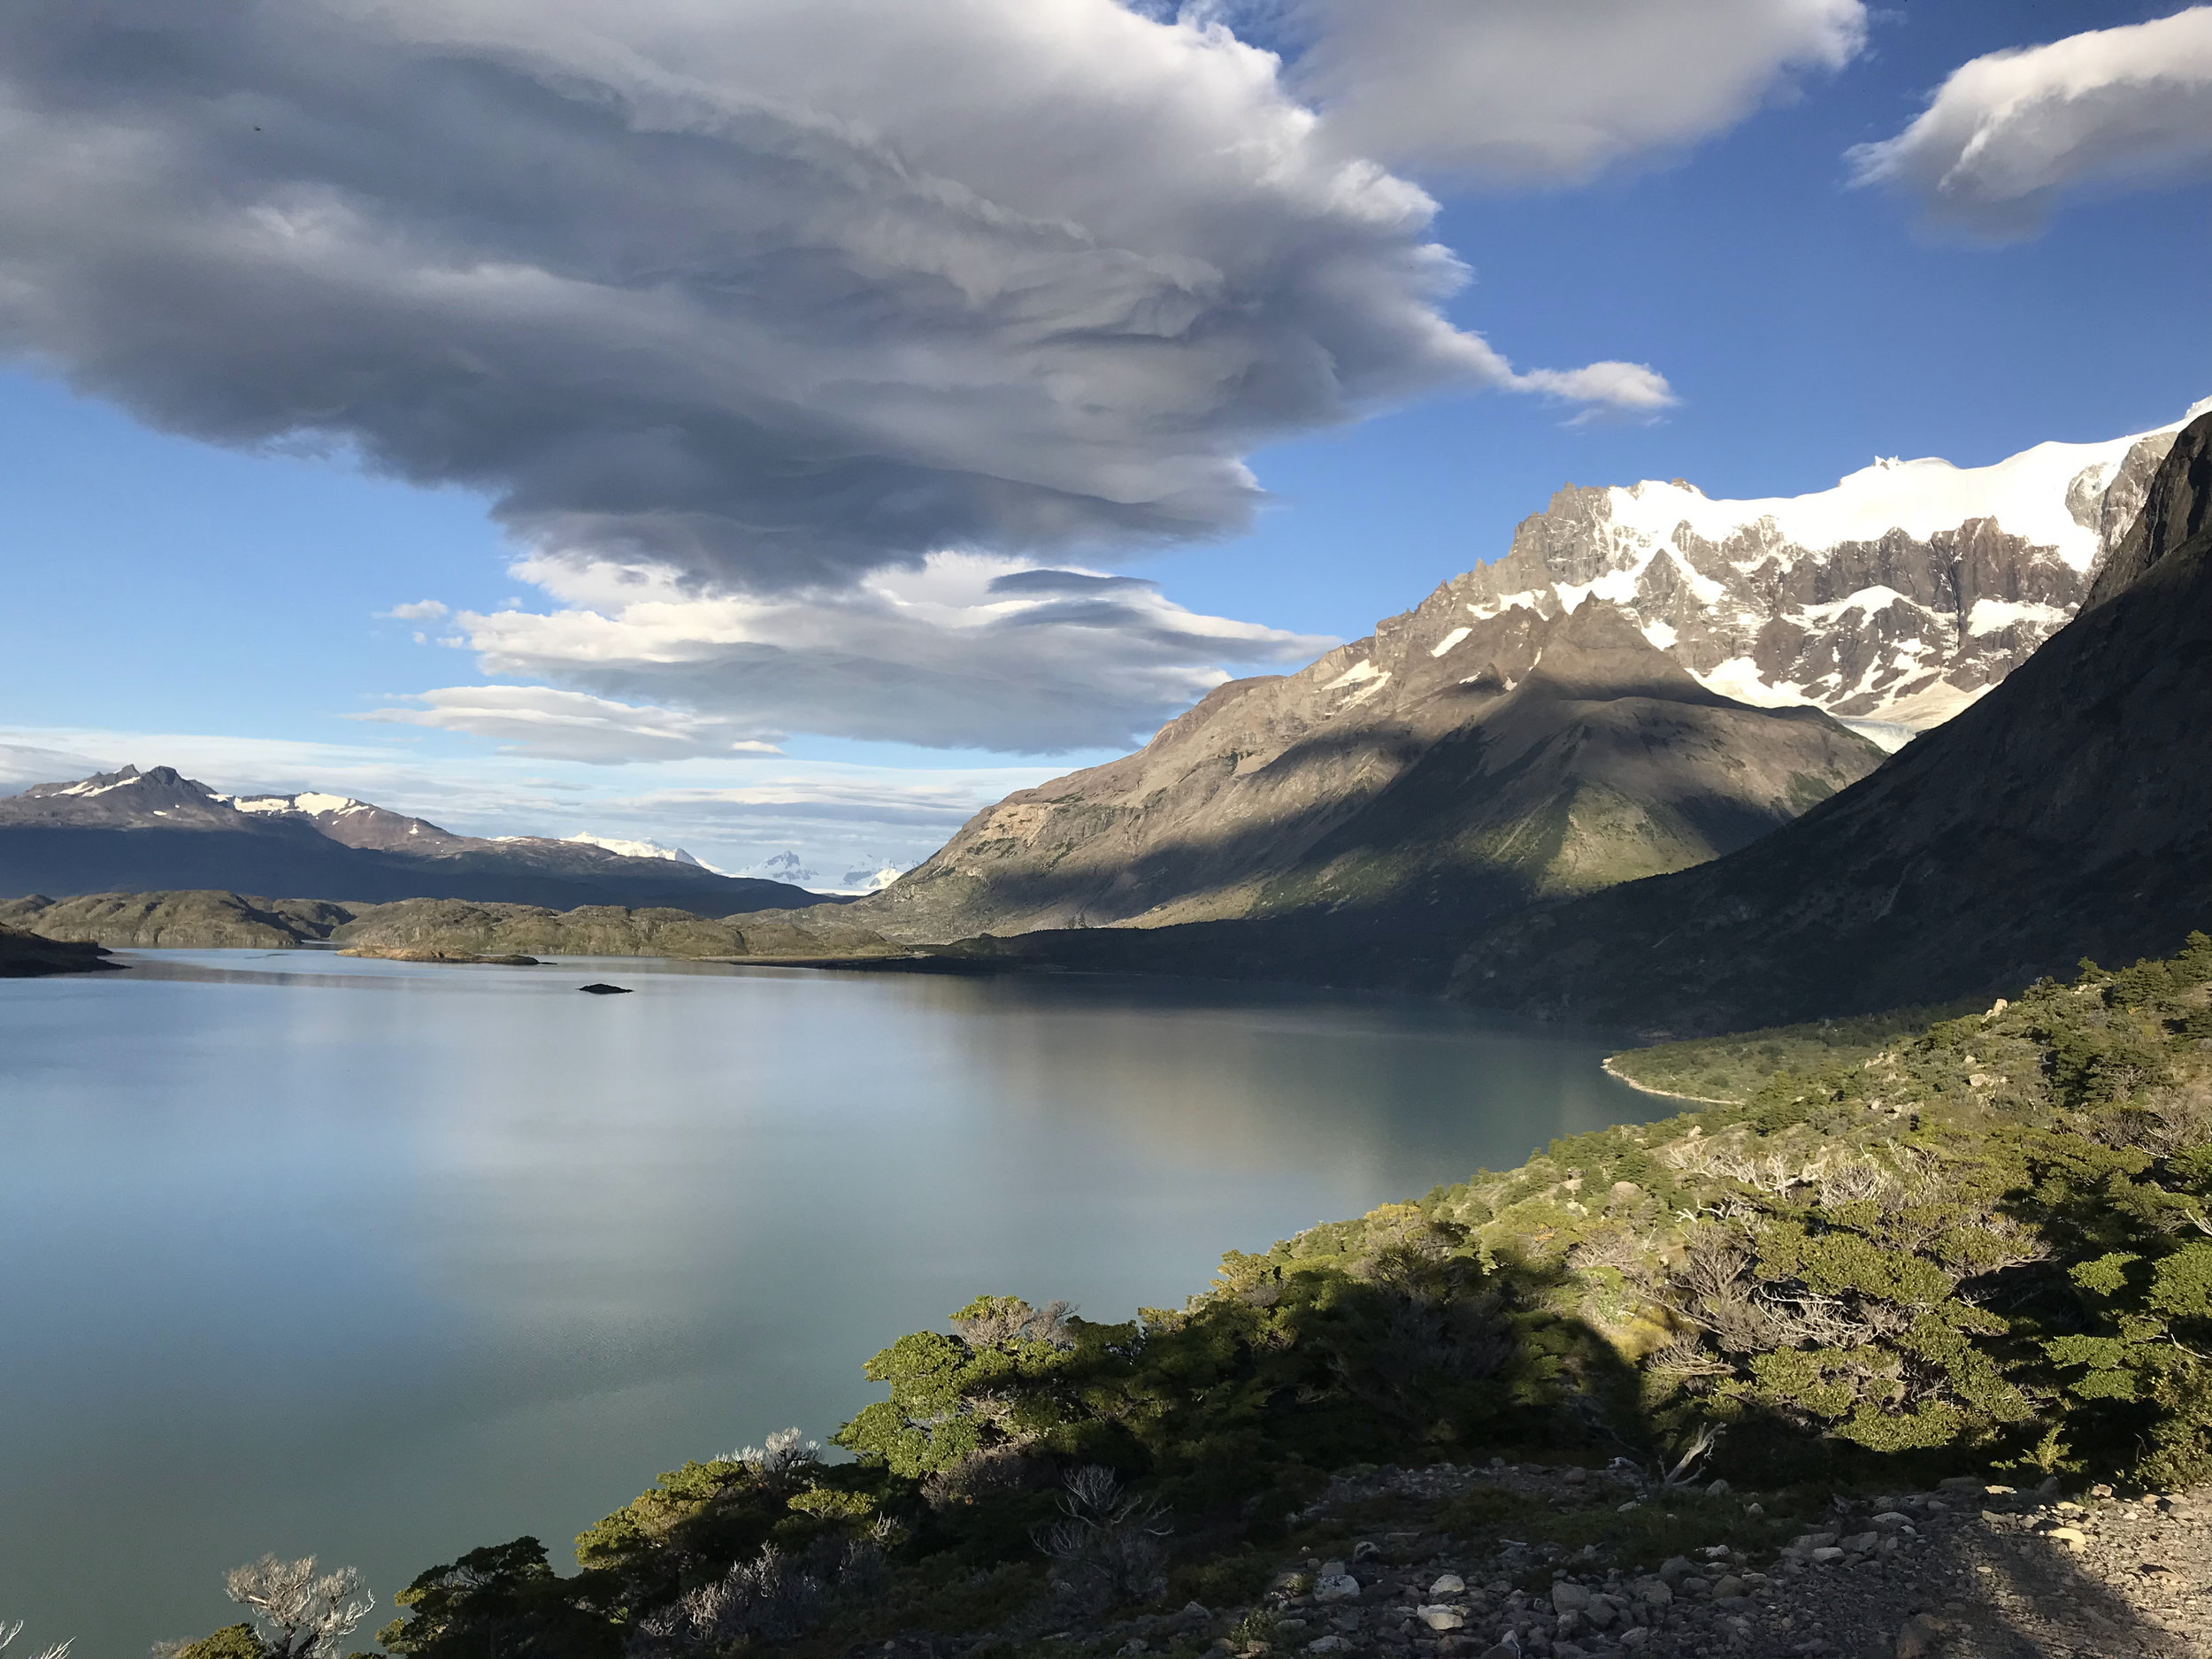 24hourkitchenabroad-guide-to-5day-food-torres-del-paine-wtrek